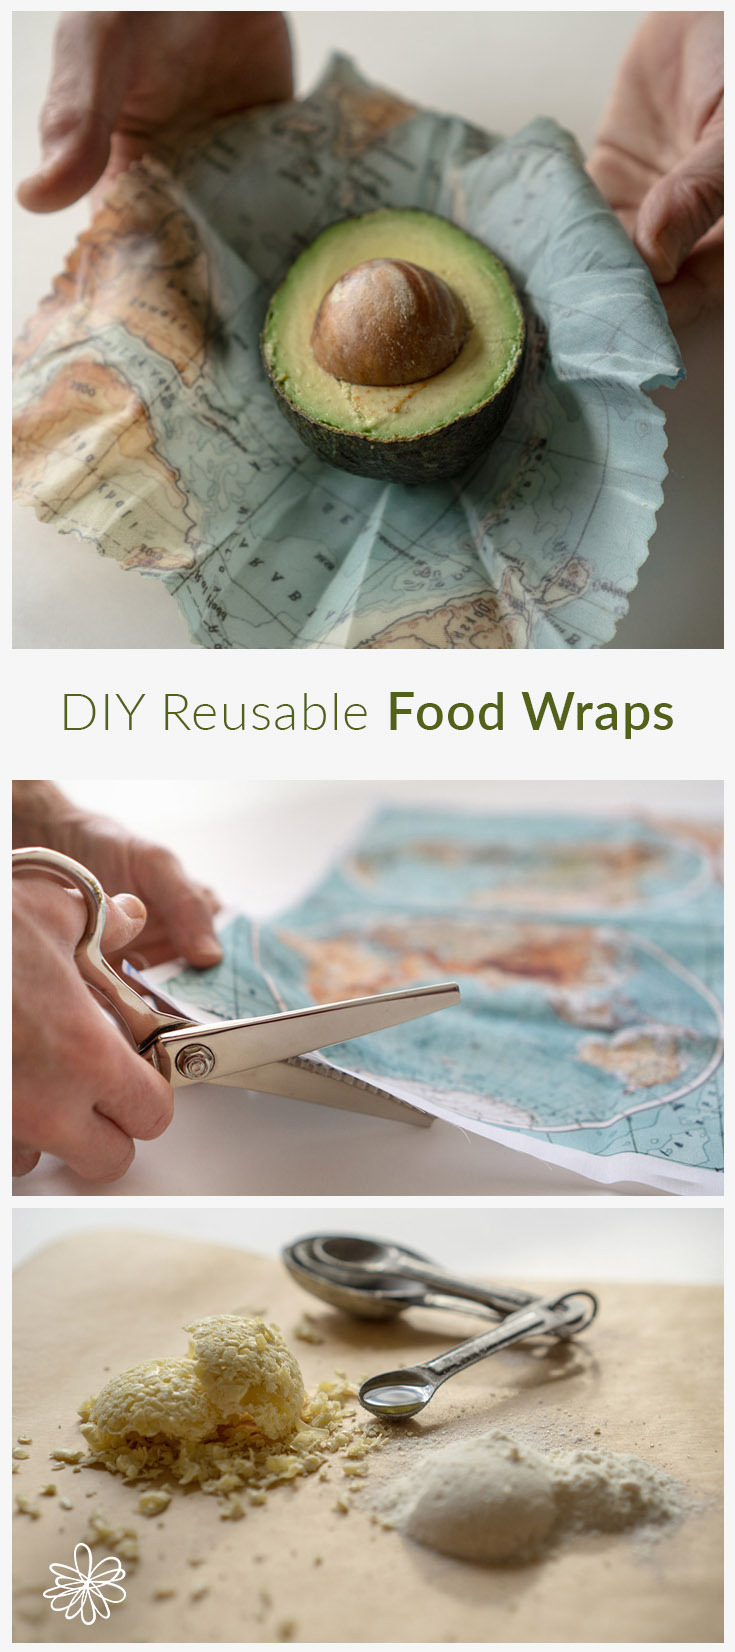 Going Green in 2019 | DIY Reusable Food Wraps | Spoonflower Blog